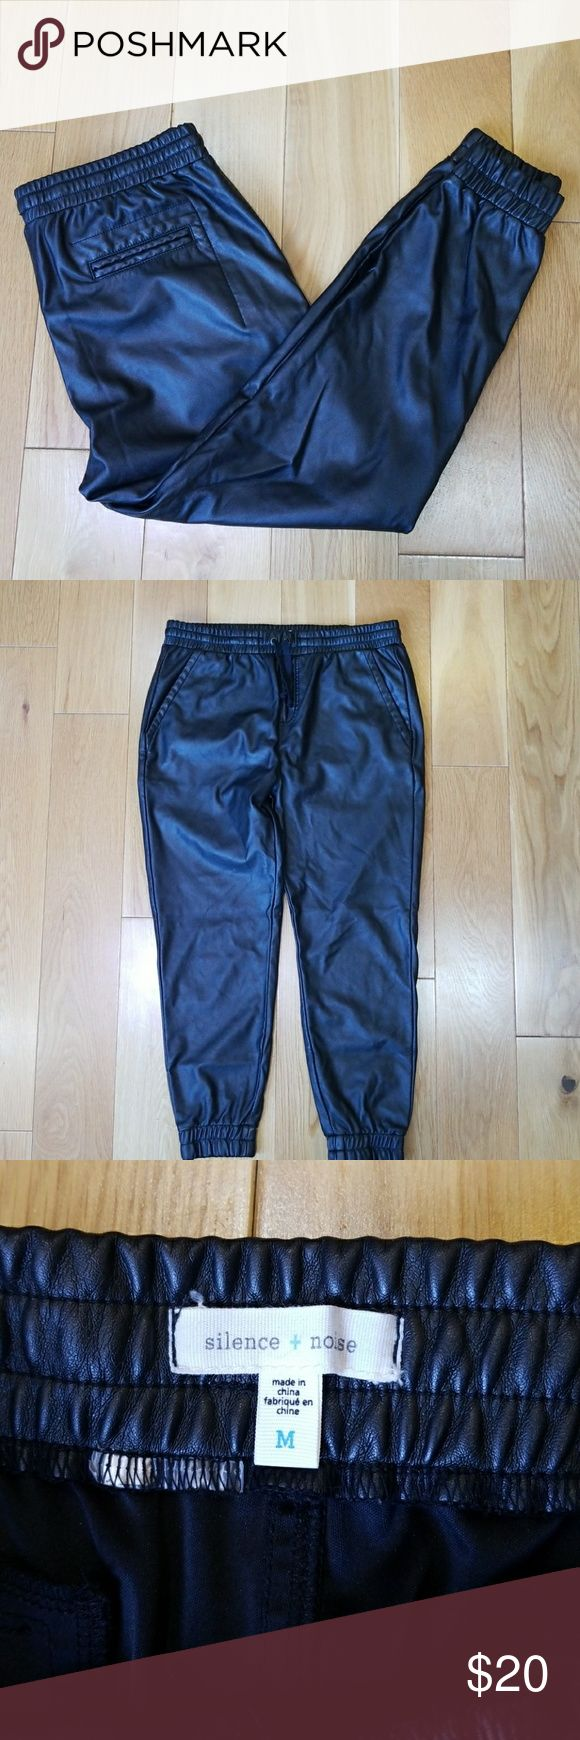 Urban Outfitters Vegan Leather Joggers Pants Cuff Urban Outfitters Silence and Noise Size M Fake Leather Jogger Pants Cuffed Drawstring  All measurements are done with the garment laying flat on a table and measured straight across.  Inseam: 24 inches Hip to Hip: 18 inches across Rise: 10 inches Thigh: 11 inches across Waist: 16 inches across  Size: Medium  Great condition! Barely worn, no visible signs of wear.  Feel free to ask questions! I want to make sure you're getting what you want…